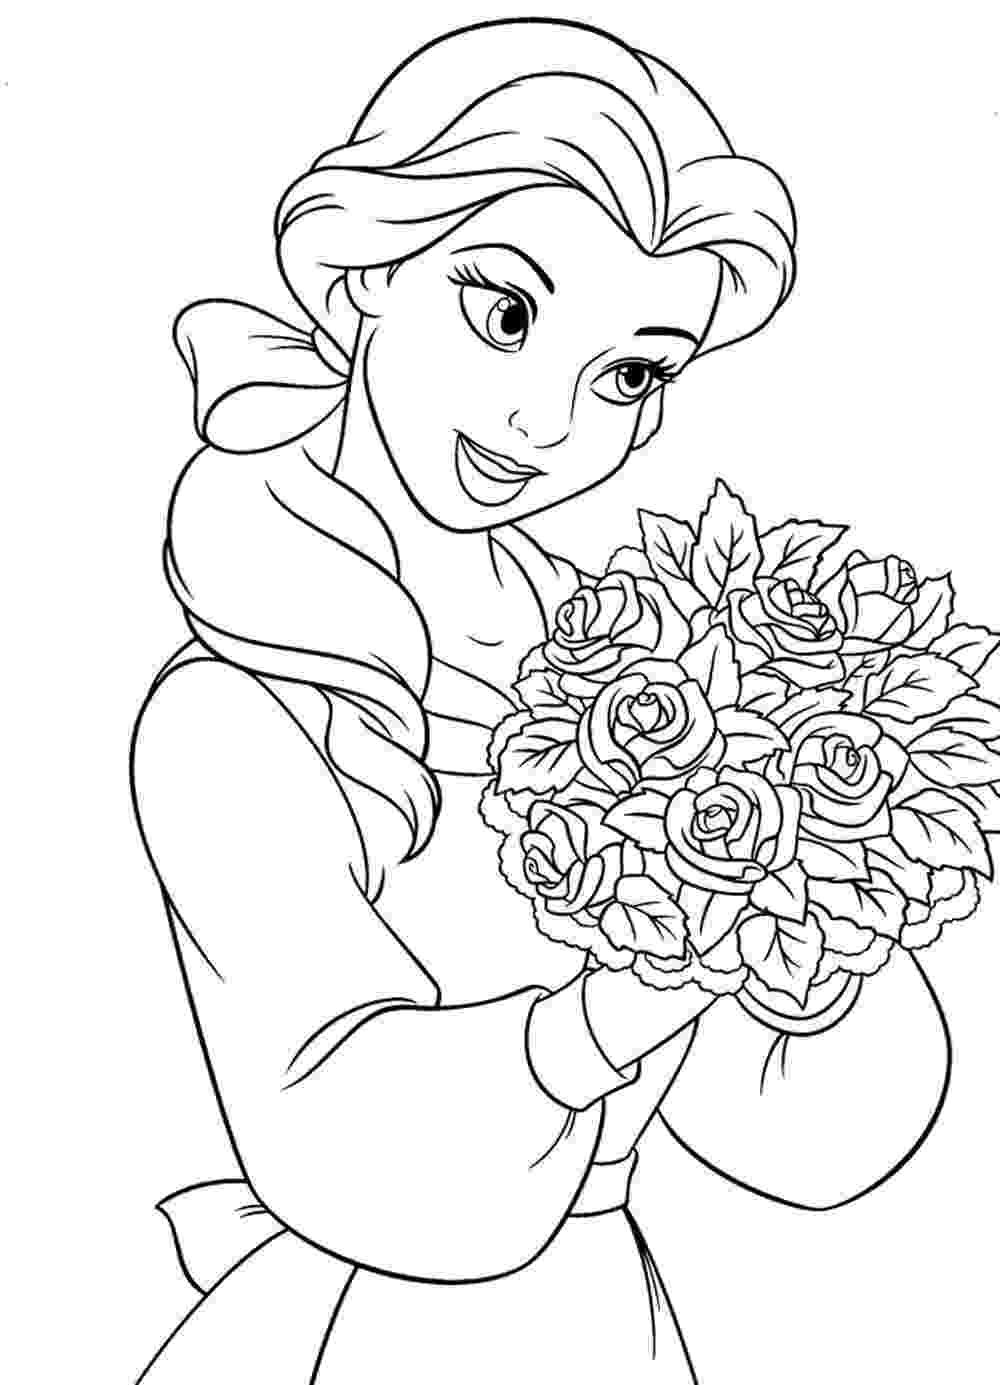 coloring pages for girls printable coloring pages for girls coloring pages to print girls coloring pages for printable